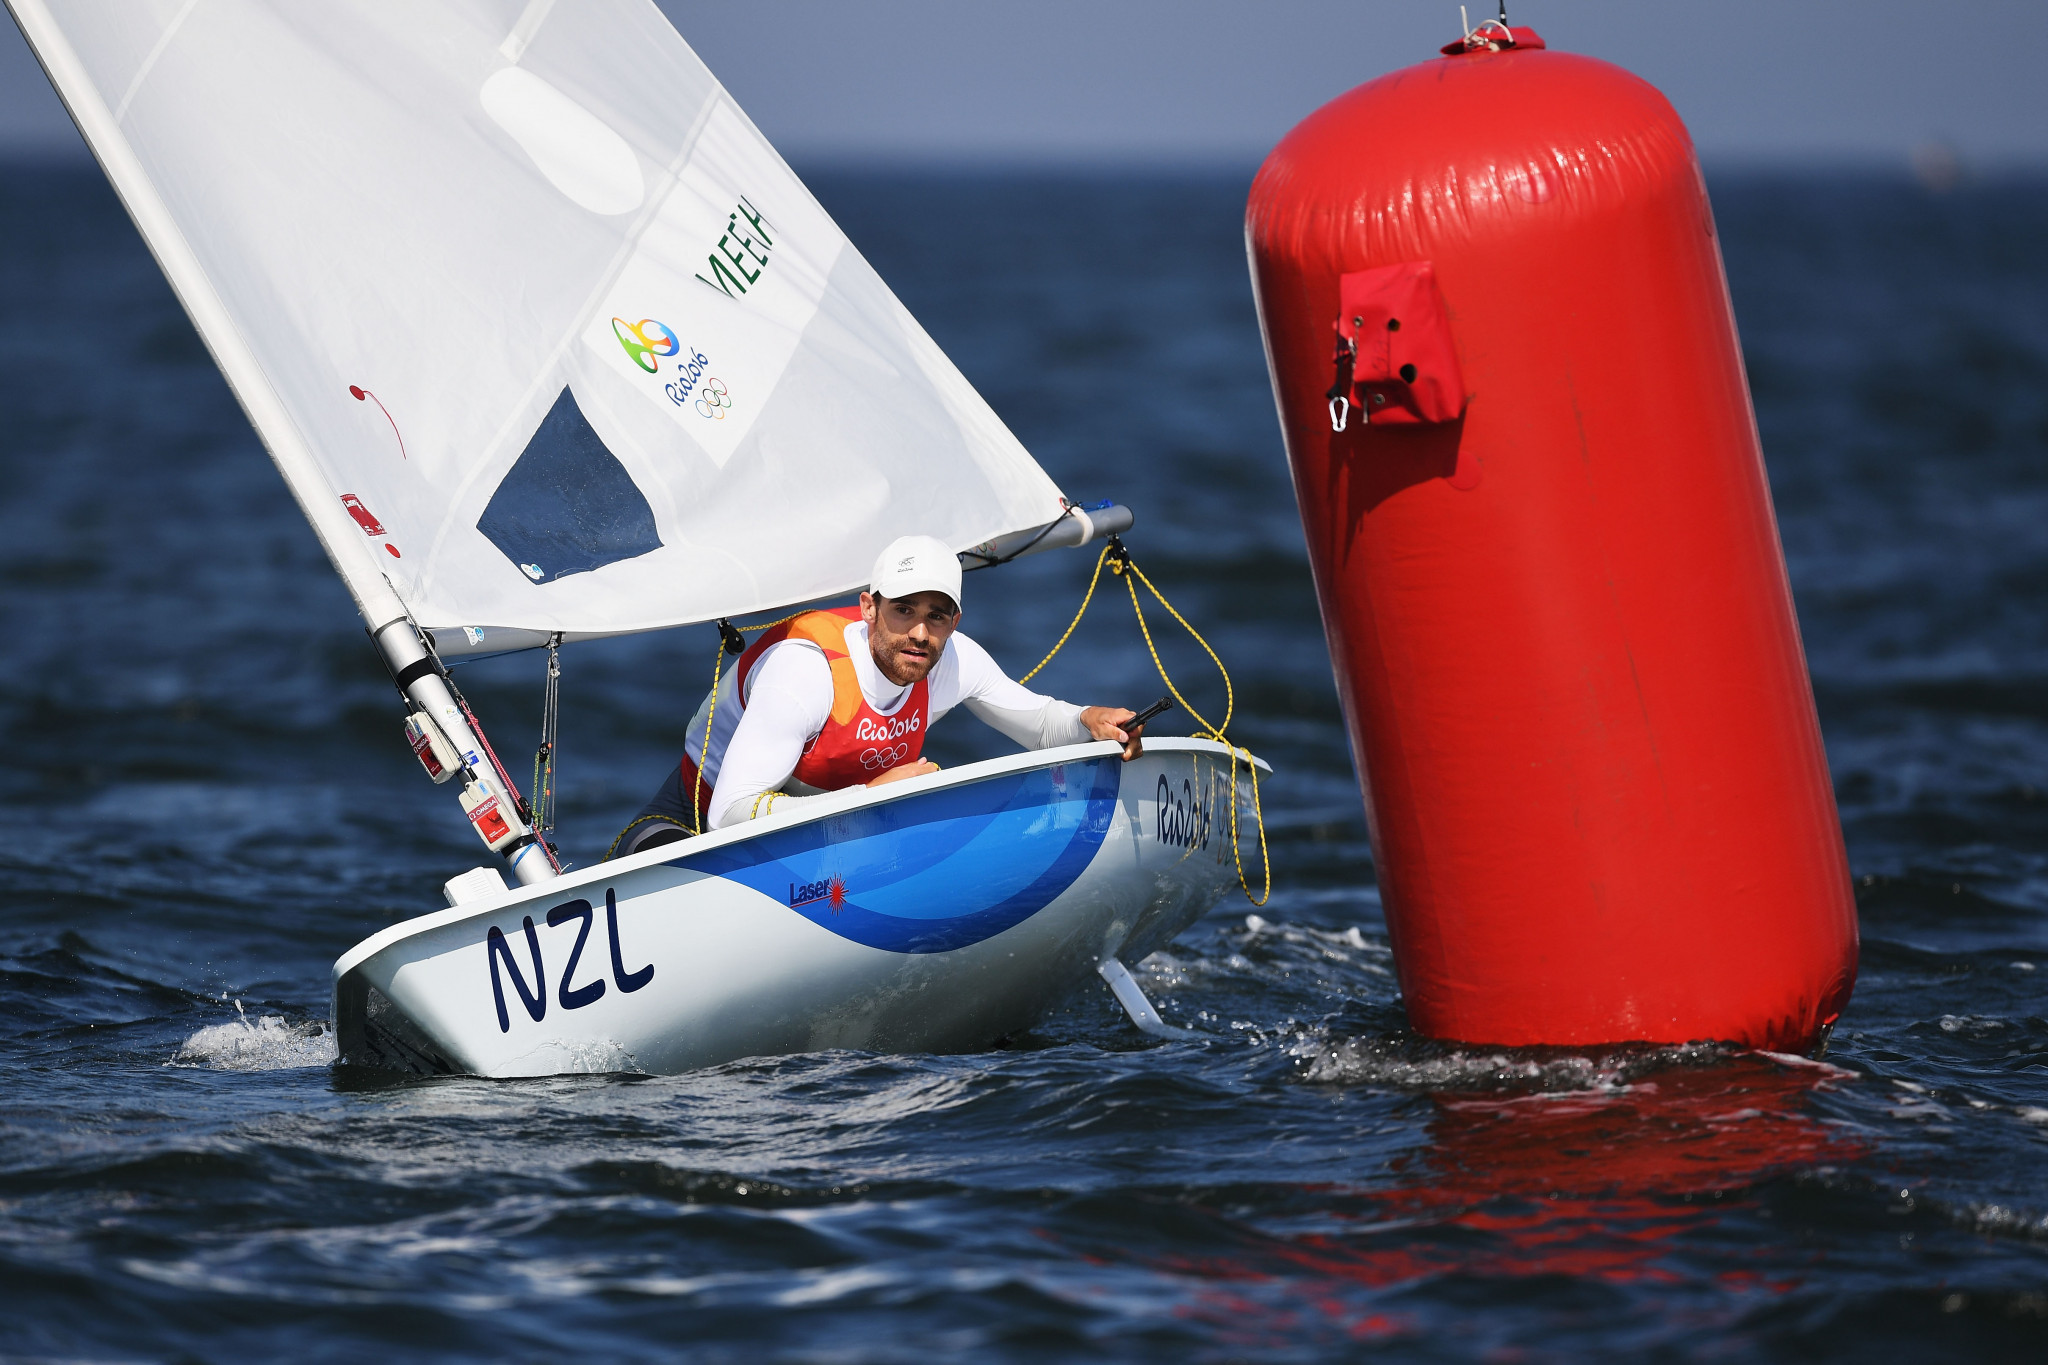 Wearn and Meech continue close battle at European Laser Championships